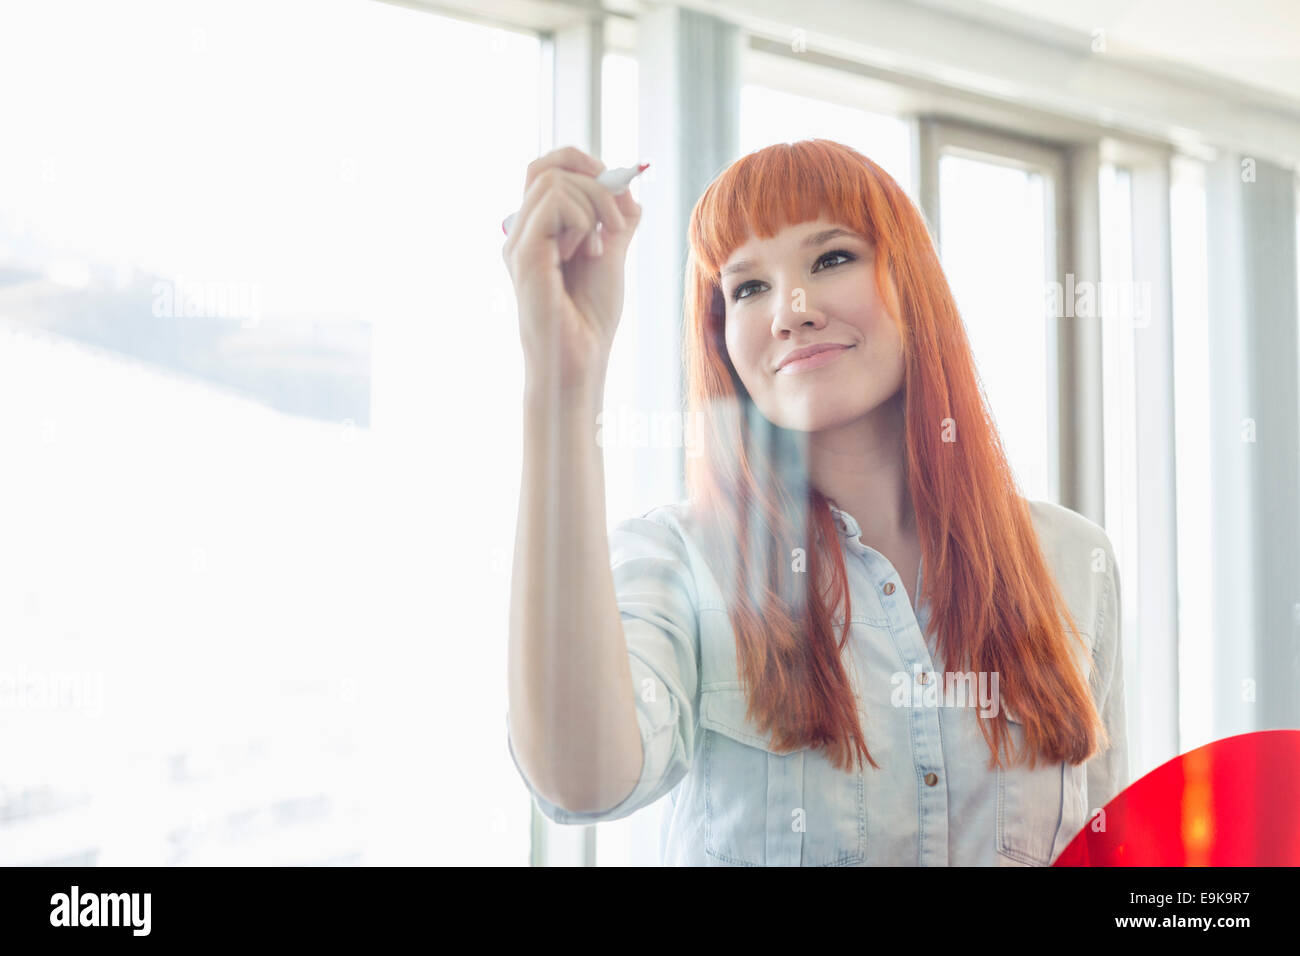 Creative portrait glass wall in office Photo Stock